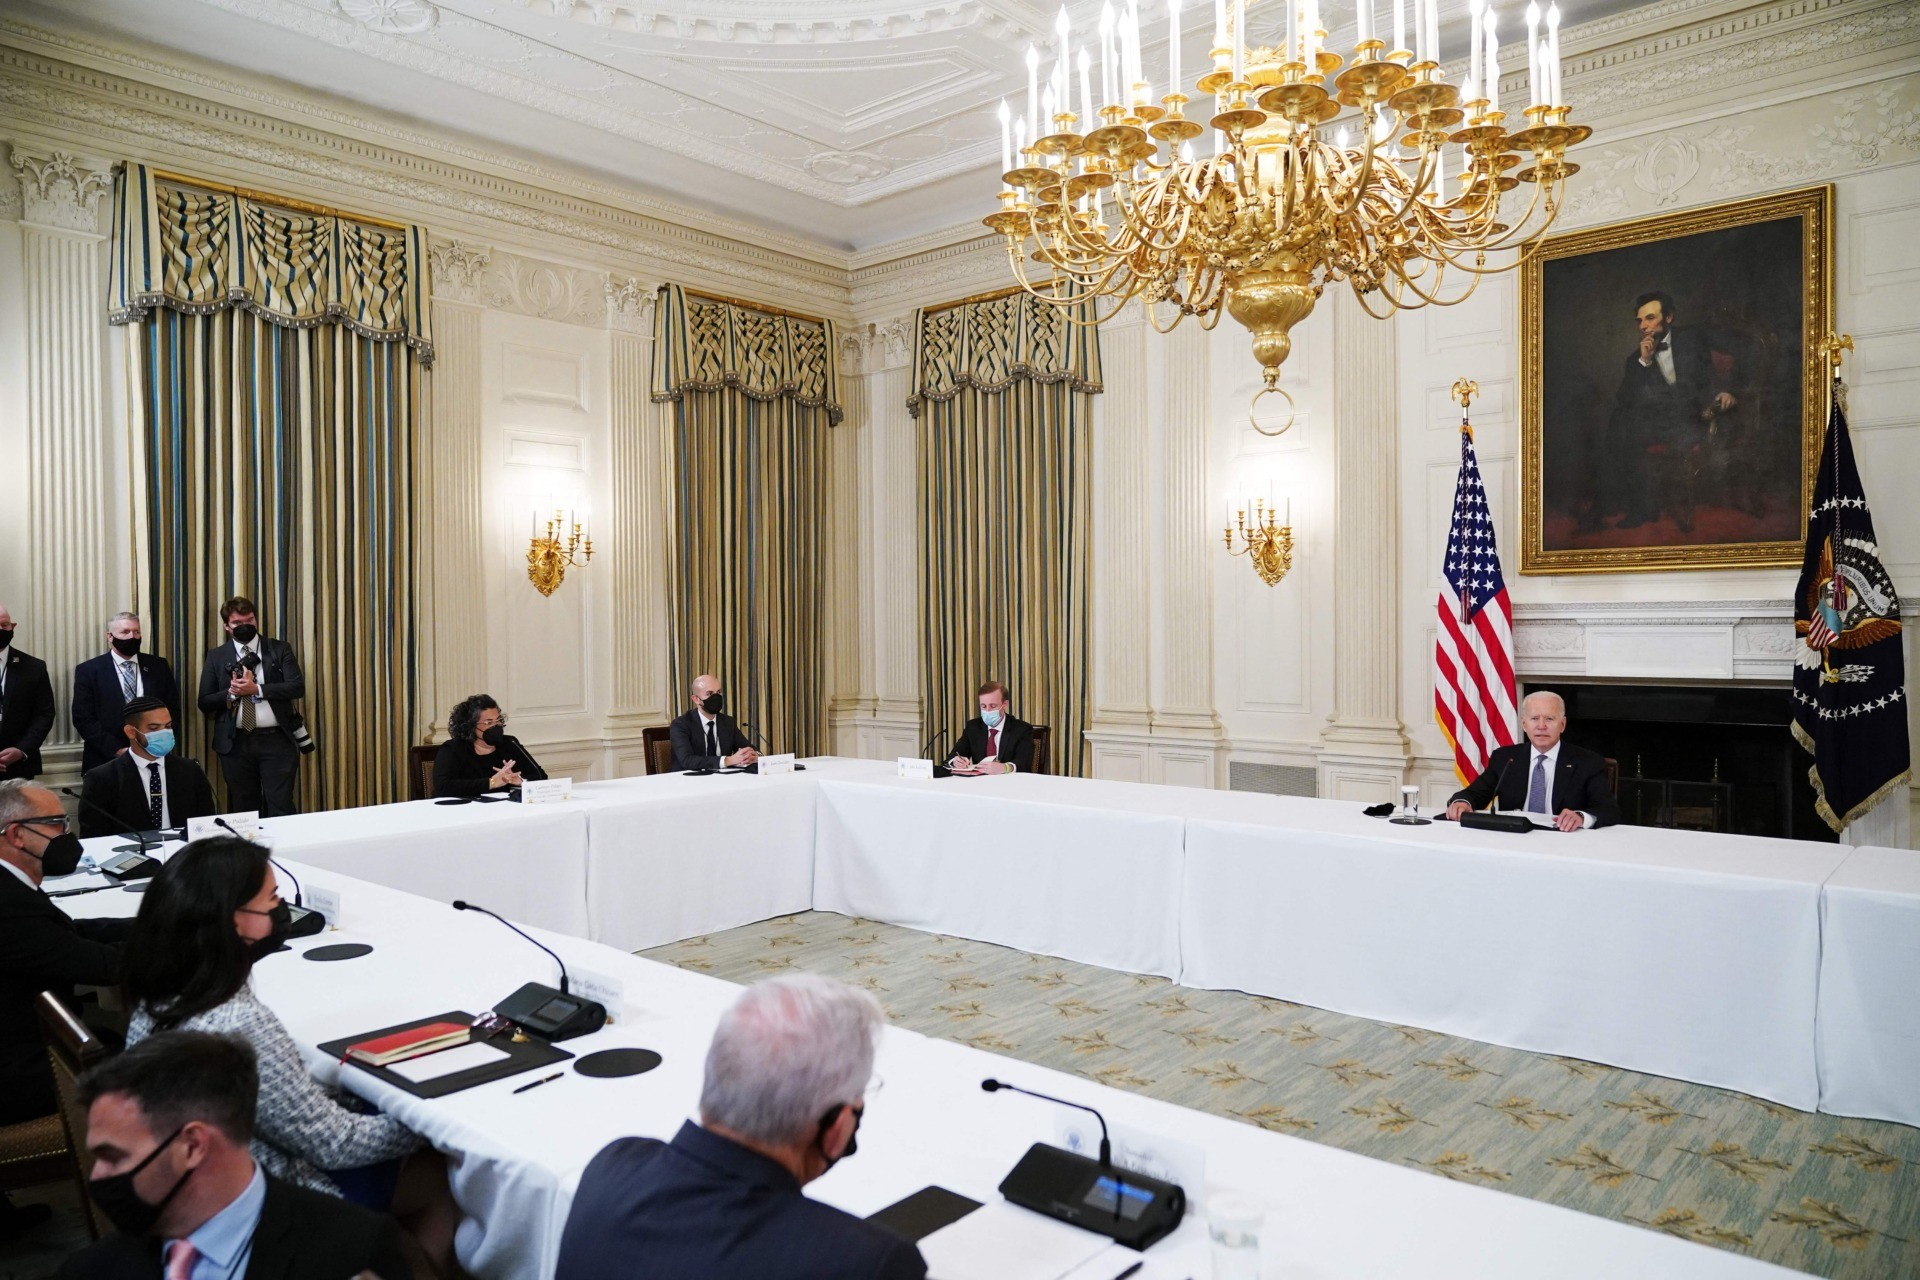 US President Joe Biden speaks during a meeting with Cuban-American leaders in the State Dining Room of the White House in Washington, DC on July 30, 2021. - The US Treasury announced sanctions July 30, 2021 on two top Cuban police officials as well as the country's entire National Revolutionary Police for their roles in suppressing anti-government demonstrations that began July 11. (Photo by MANDEL NGAN / AFP) (Photo by MANDEL NGAN/AFP via Getty Images)